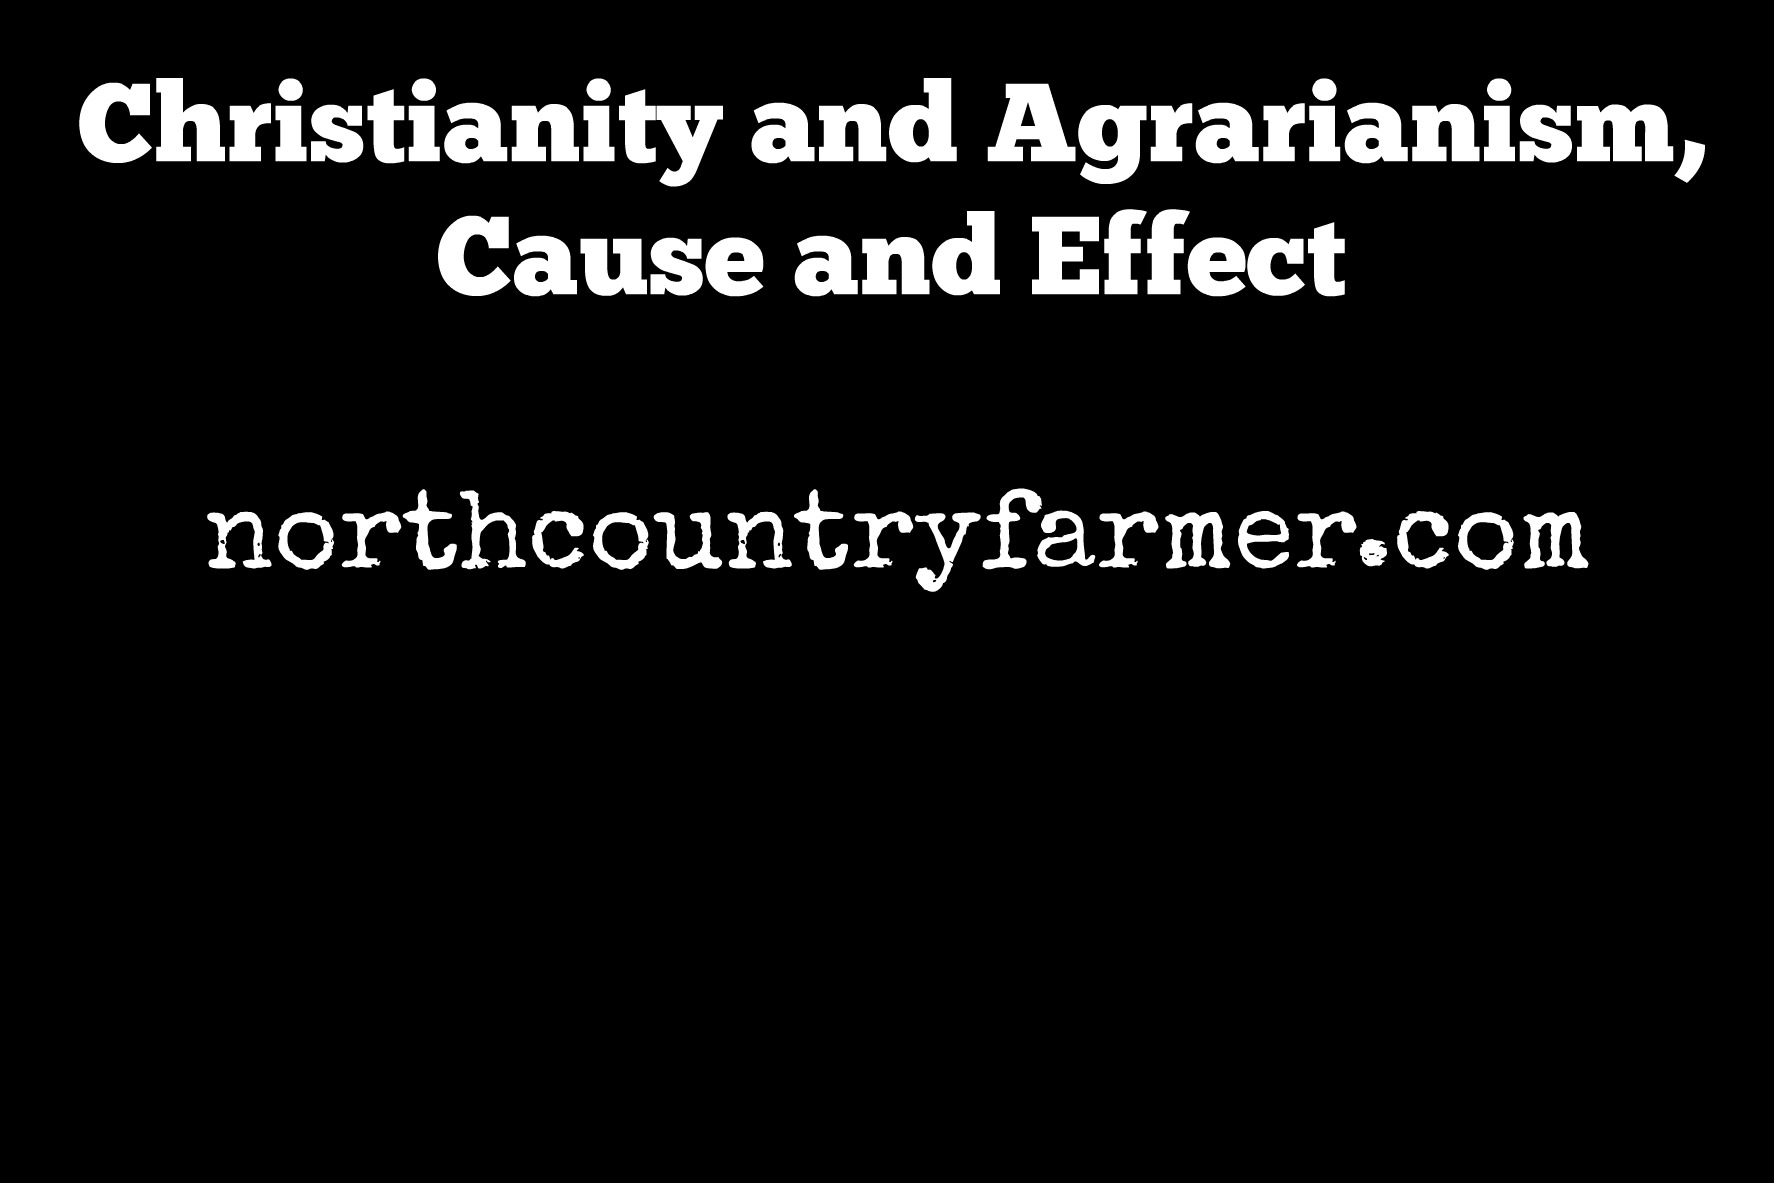 Christianity and Agrarianism, Cause and Effect